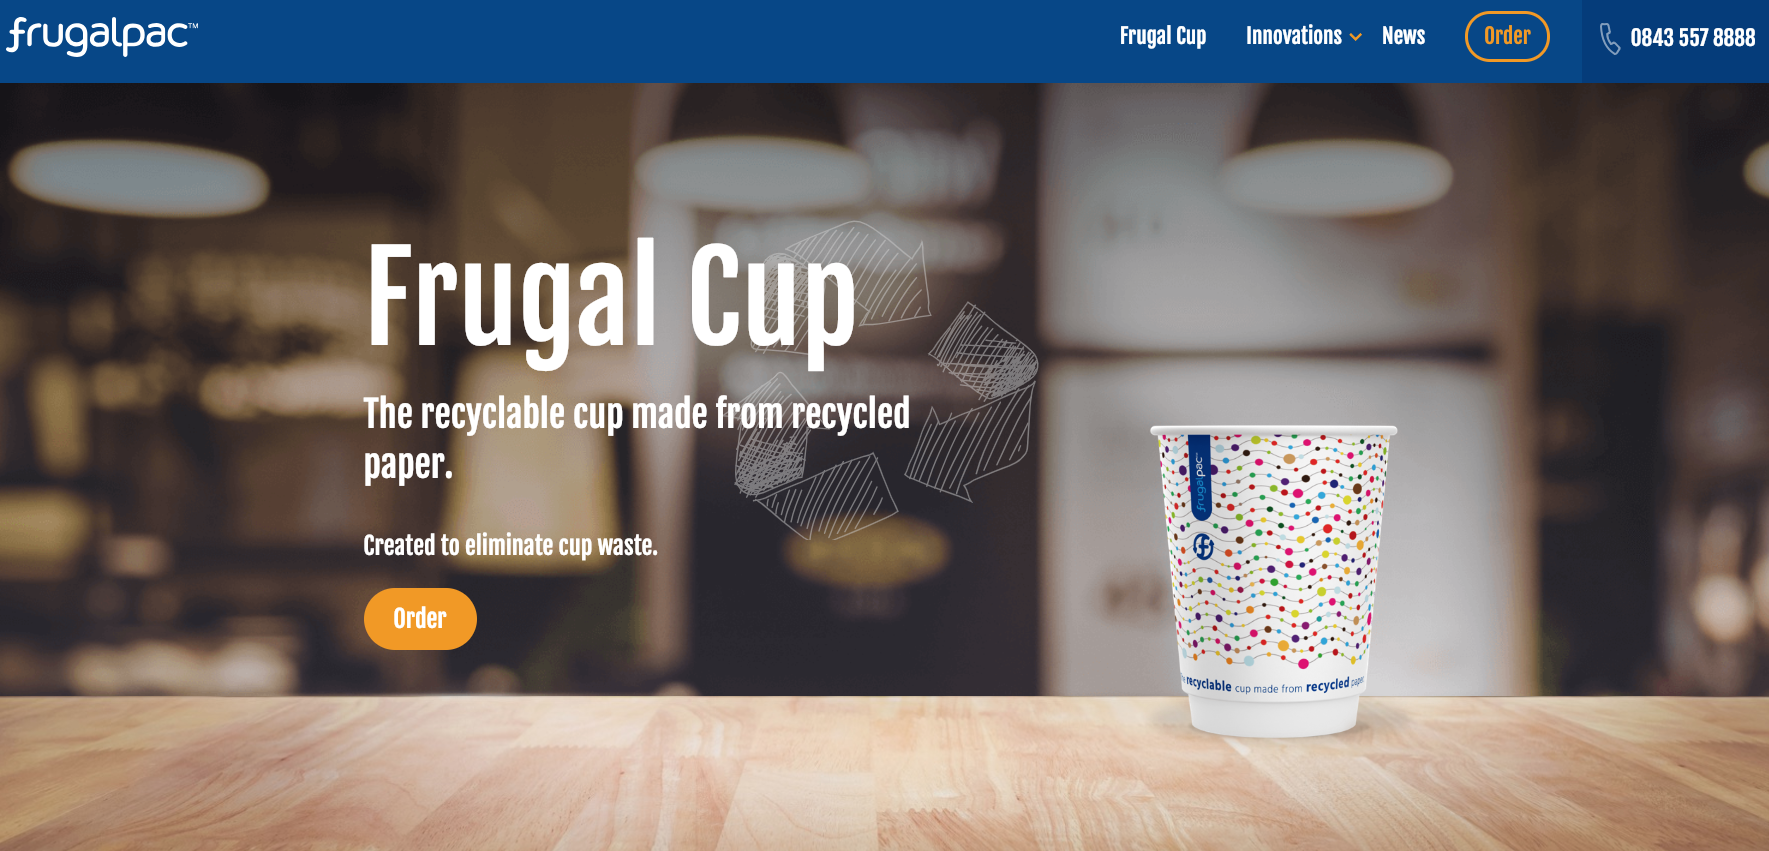 15 minutes to enjoy your coffee, eight minutes to recycle the cup